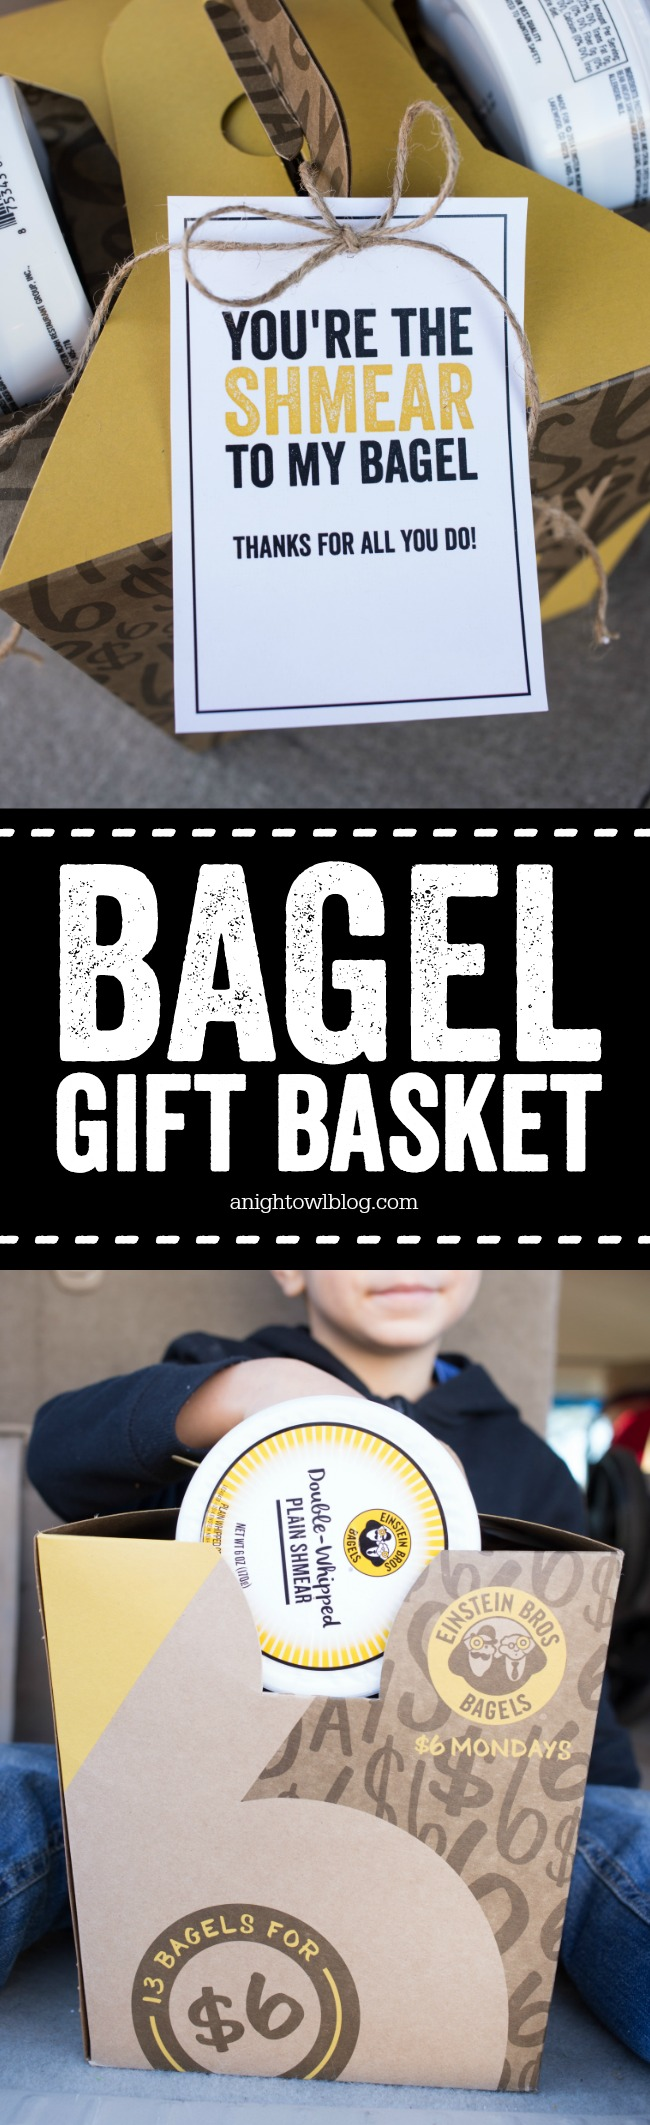 Breakfast Bagel Gift Basket - such a great gift idea for teachers, neighbors and more! With FREE cute printable tags.